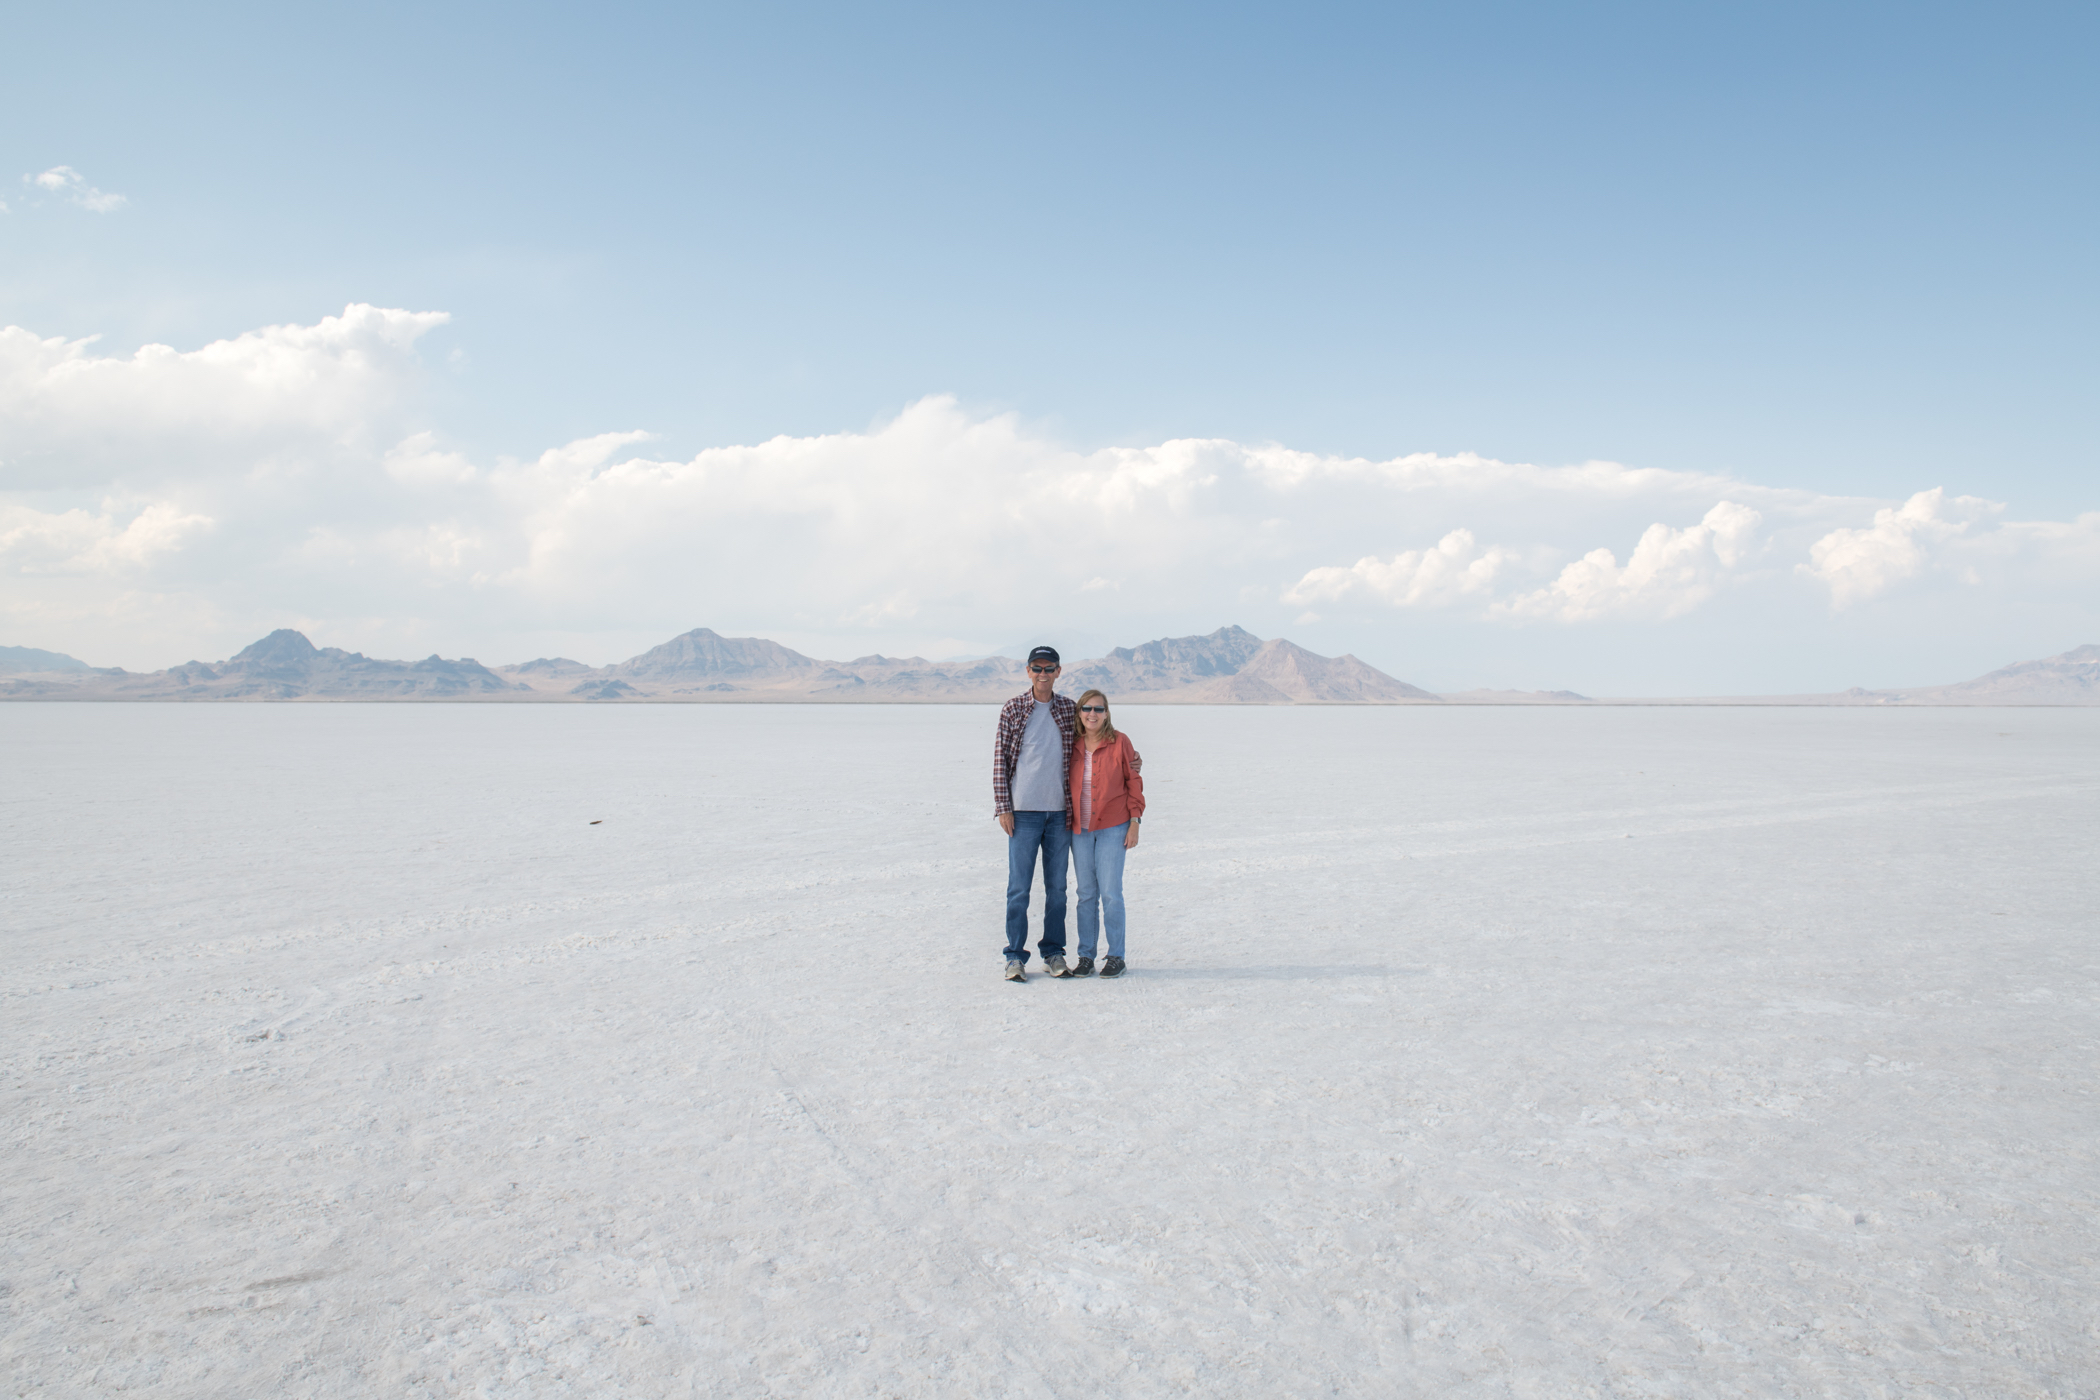 Terry and Janet on the Bonneville Salt Flats